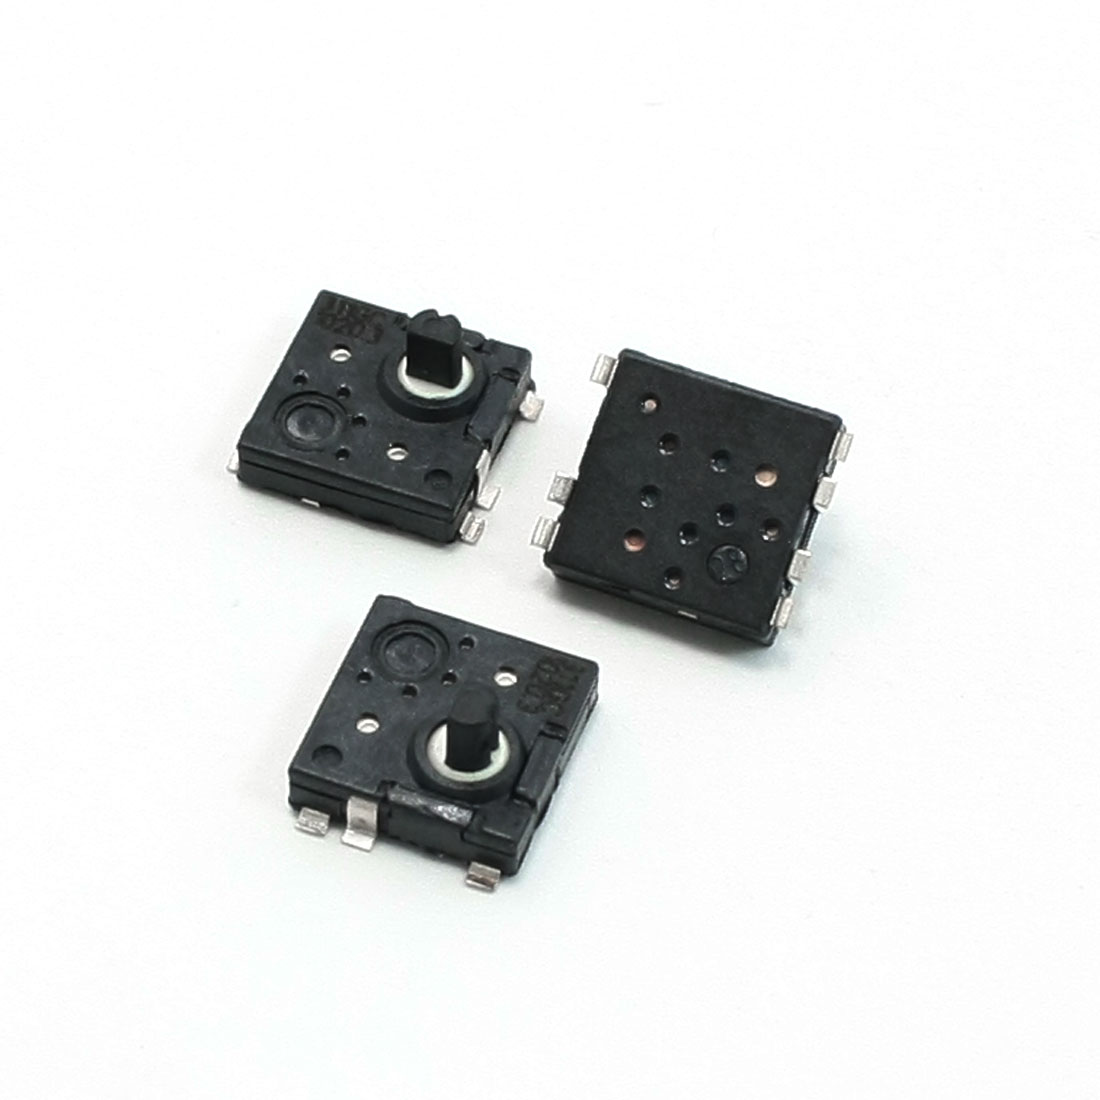 DC12V 0.3A 5x8x8mm Panel PCB Mounted Momentary 7 Terminal Tact Switch 3 Pcs